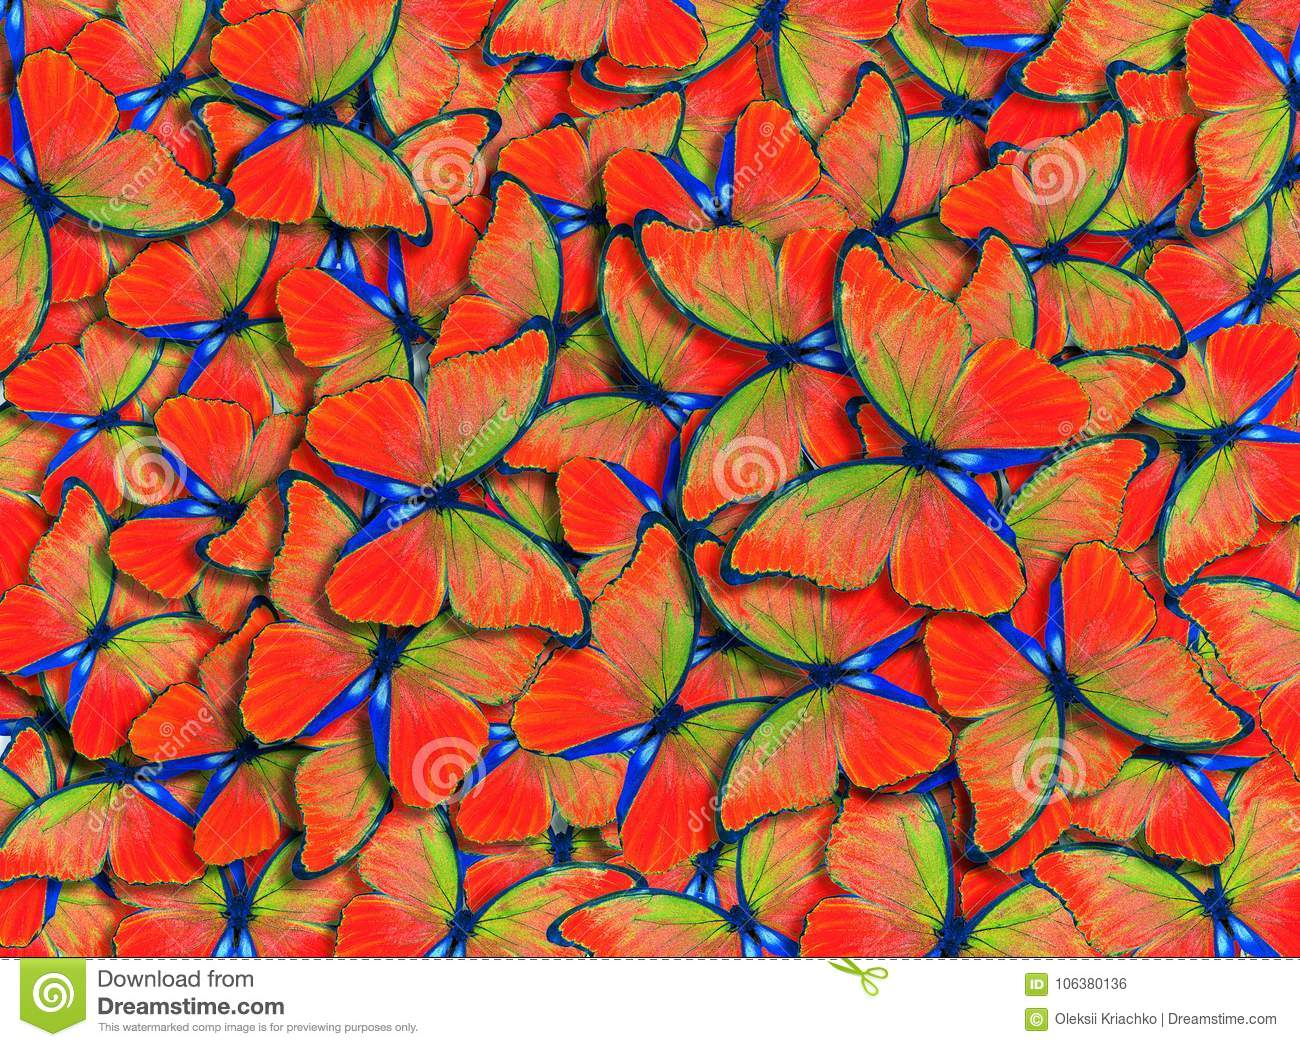 Wings of a butterfly Morpho. Flight of bright red butterflies abstract background.